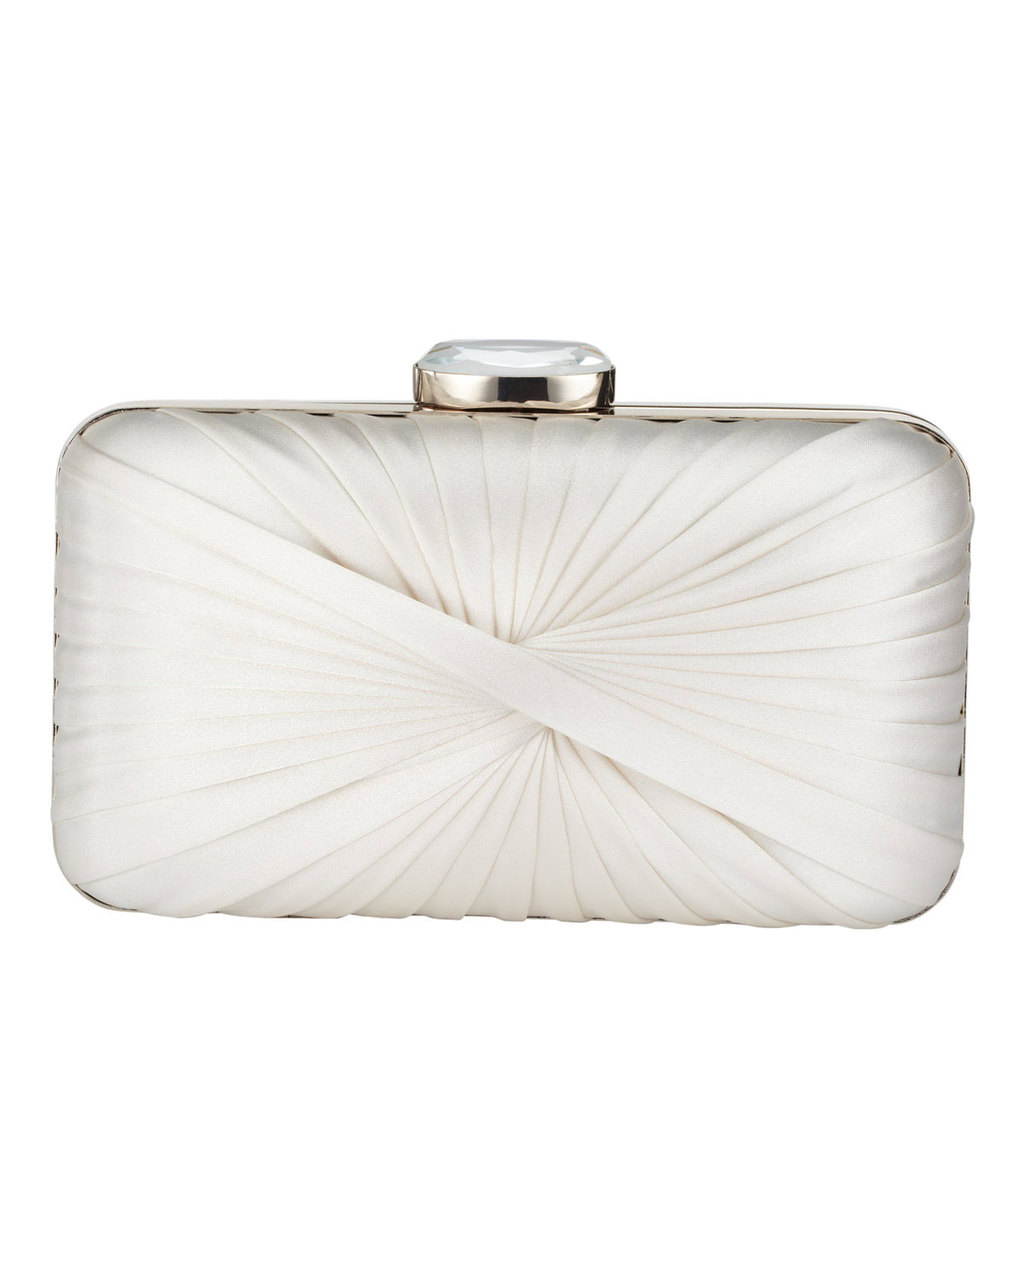 Millie Twist Satin Clutch - predominant colour: white; secondary colour: silver; occasions: evening, occasion; type of pattern: standard; style: clutch; length: hand carry; size: mini; material: satin; pattern: plain; finish: plain; season: s/s 2016; wardrobe: event